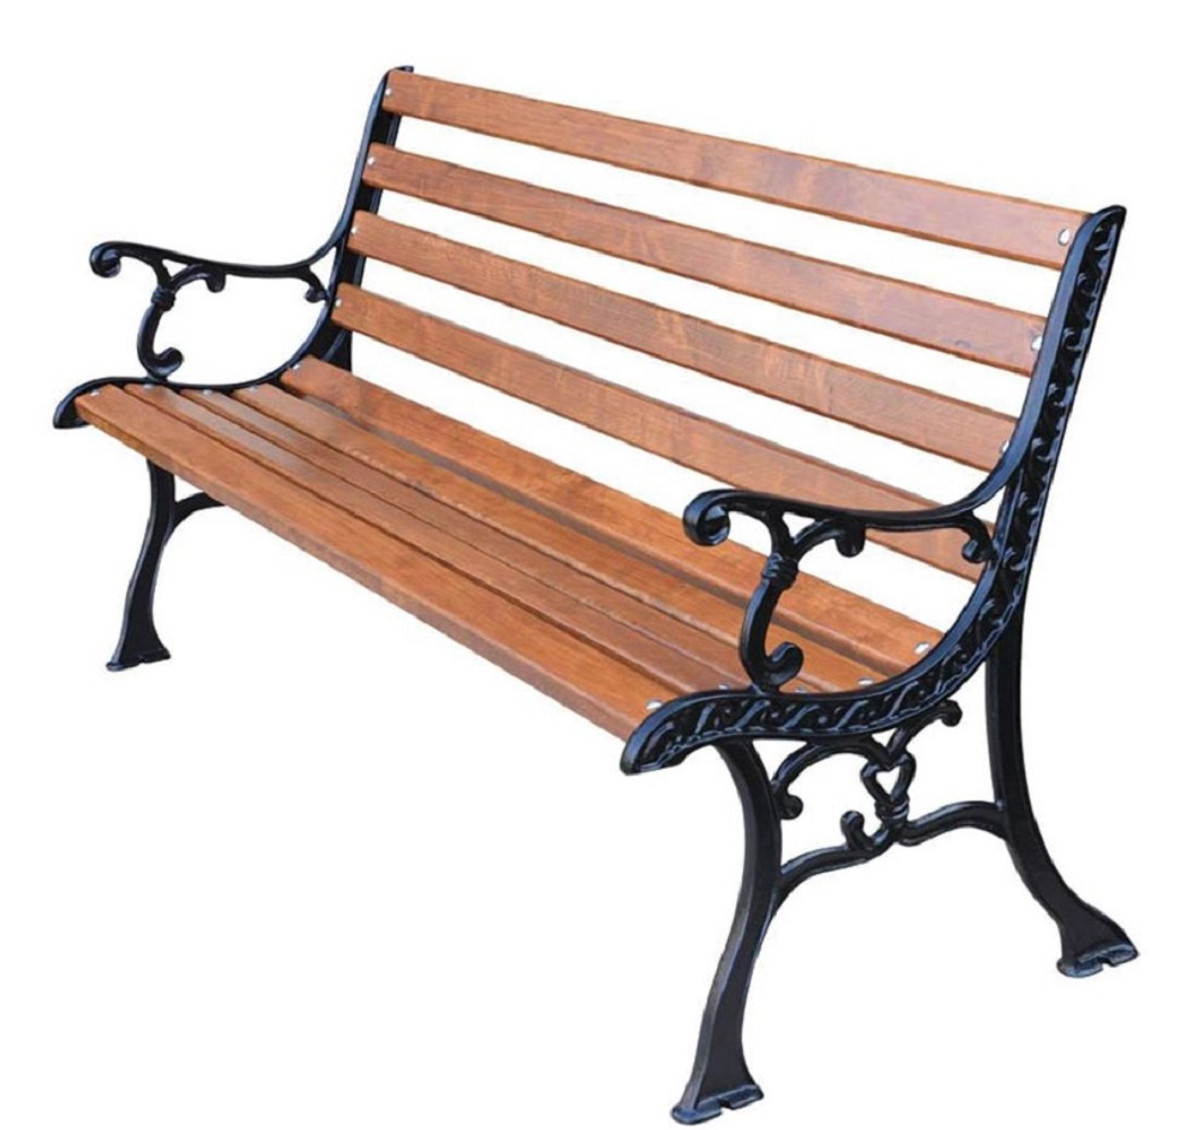 Casa Padrino Art Nouveau Garden Bench With Armrests Brown Black